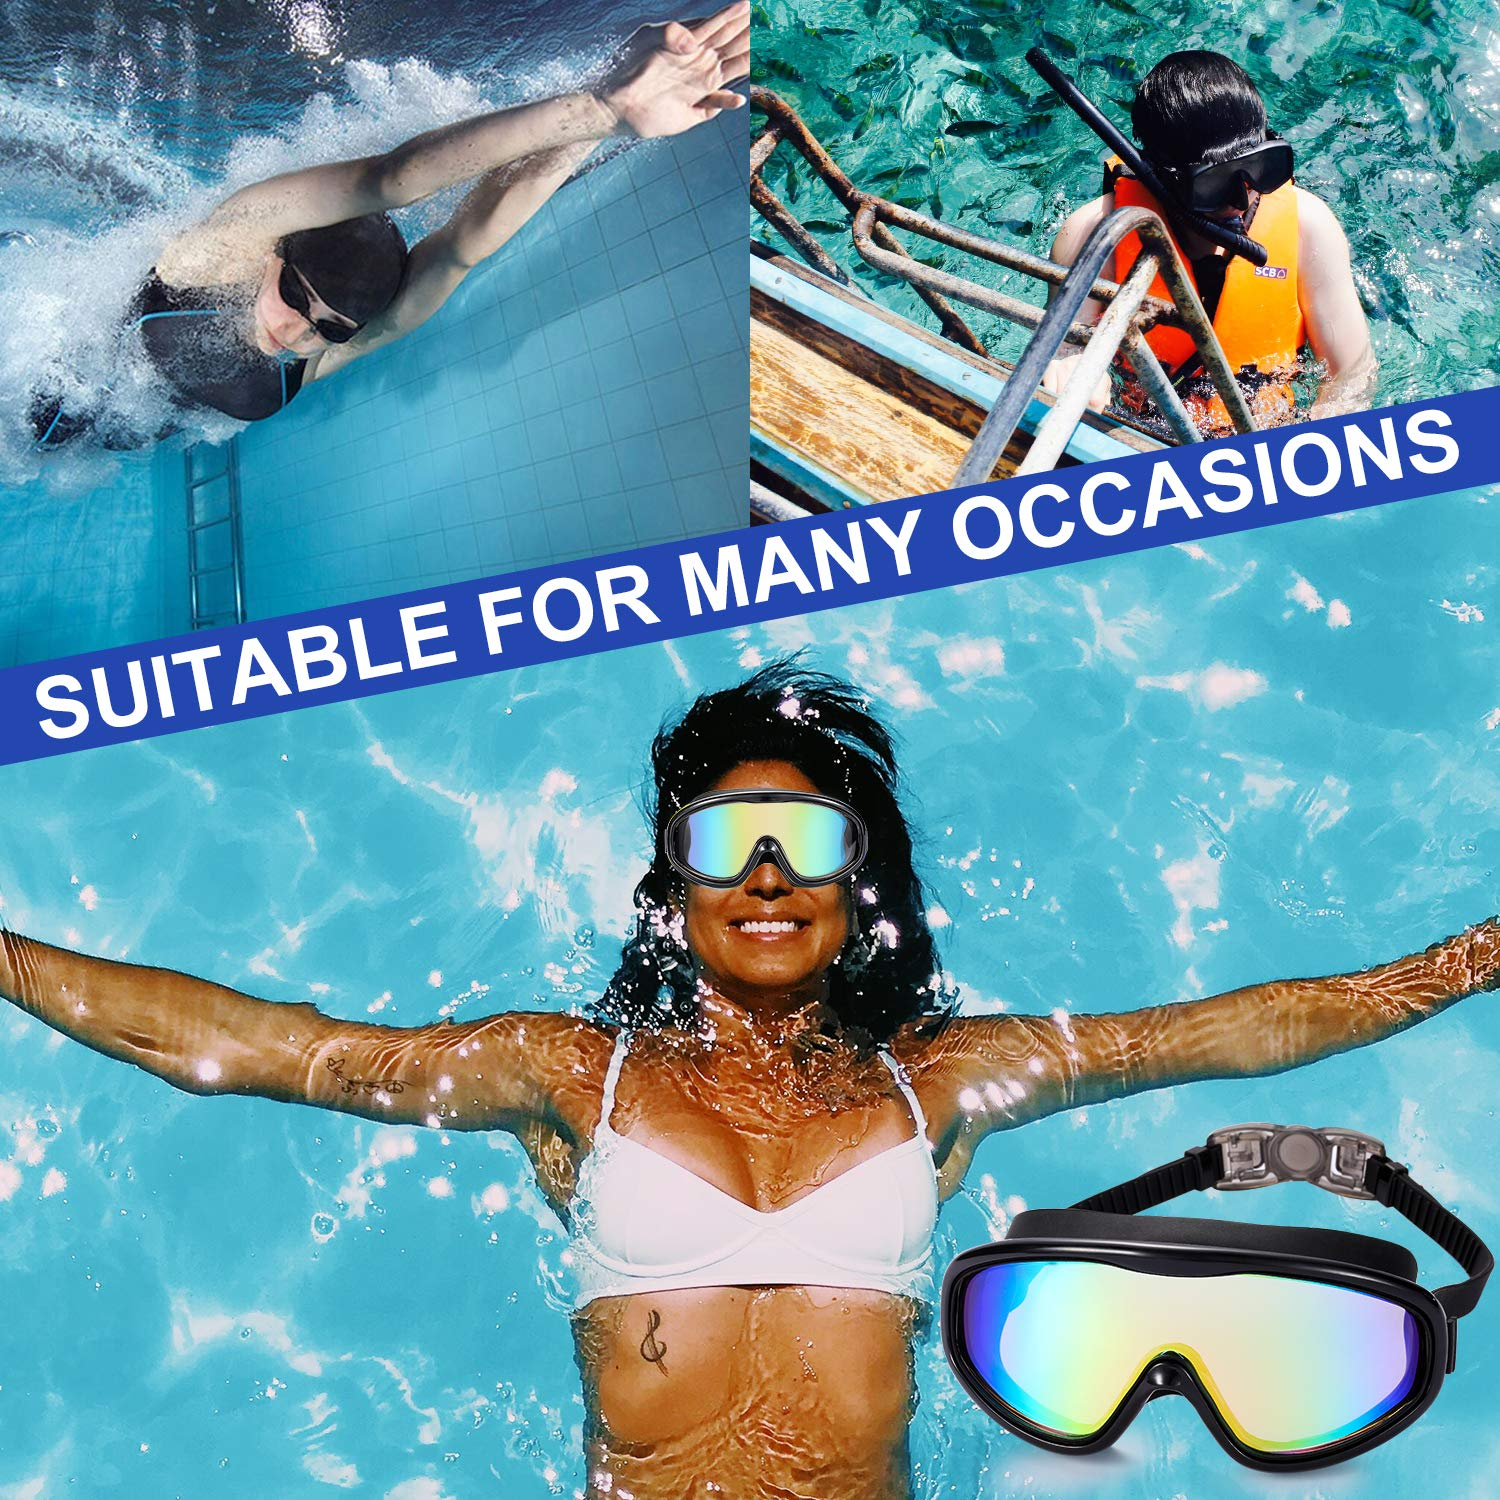 No Leaking Anti Fog UV 400 Protection Waterproof 180 Degree Wide Clear Vision Triathlon Pool Kabuda 2 Pack Swim Goggles Set of 2 Swimming Glasses for Adult Men Women Youth